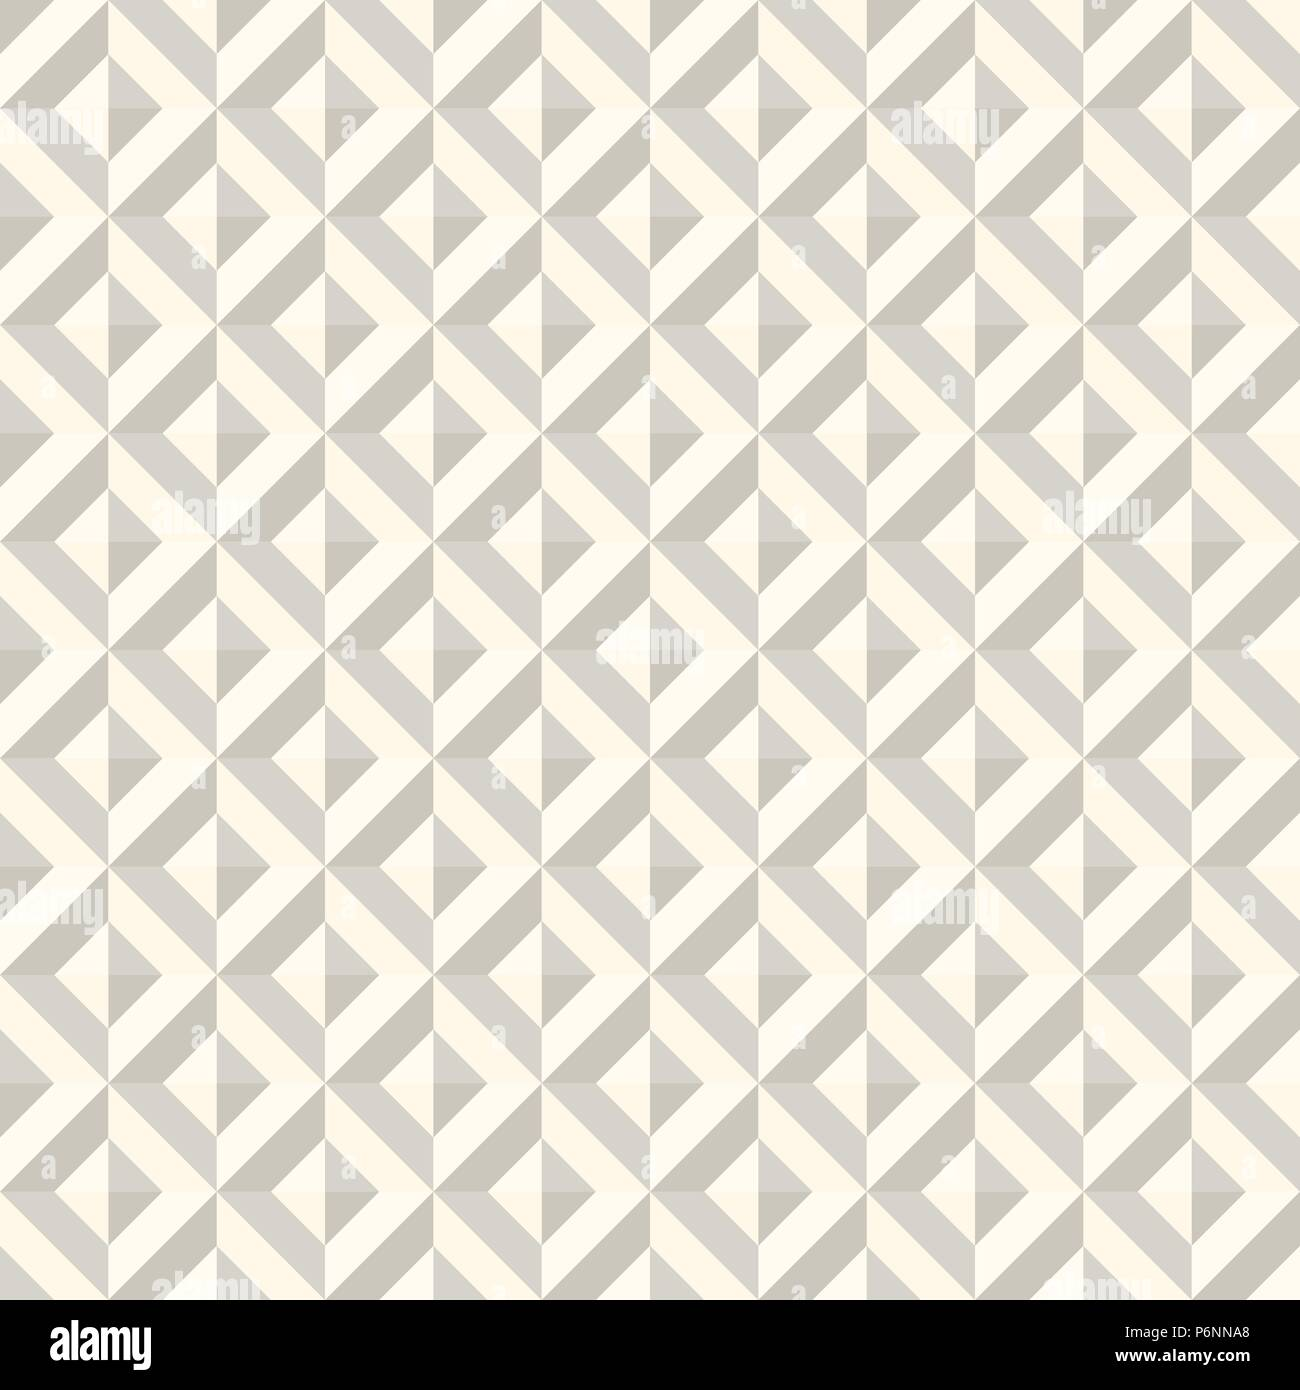 Beige Abstract rectangle seamless pattern. Modern rectangle for graphic design. - Stock Vector